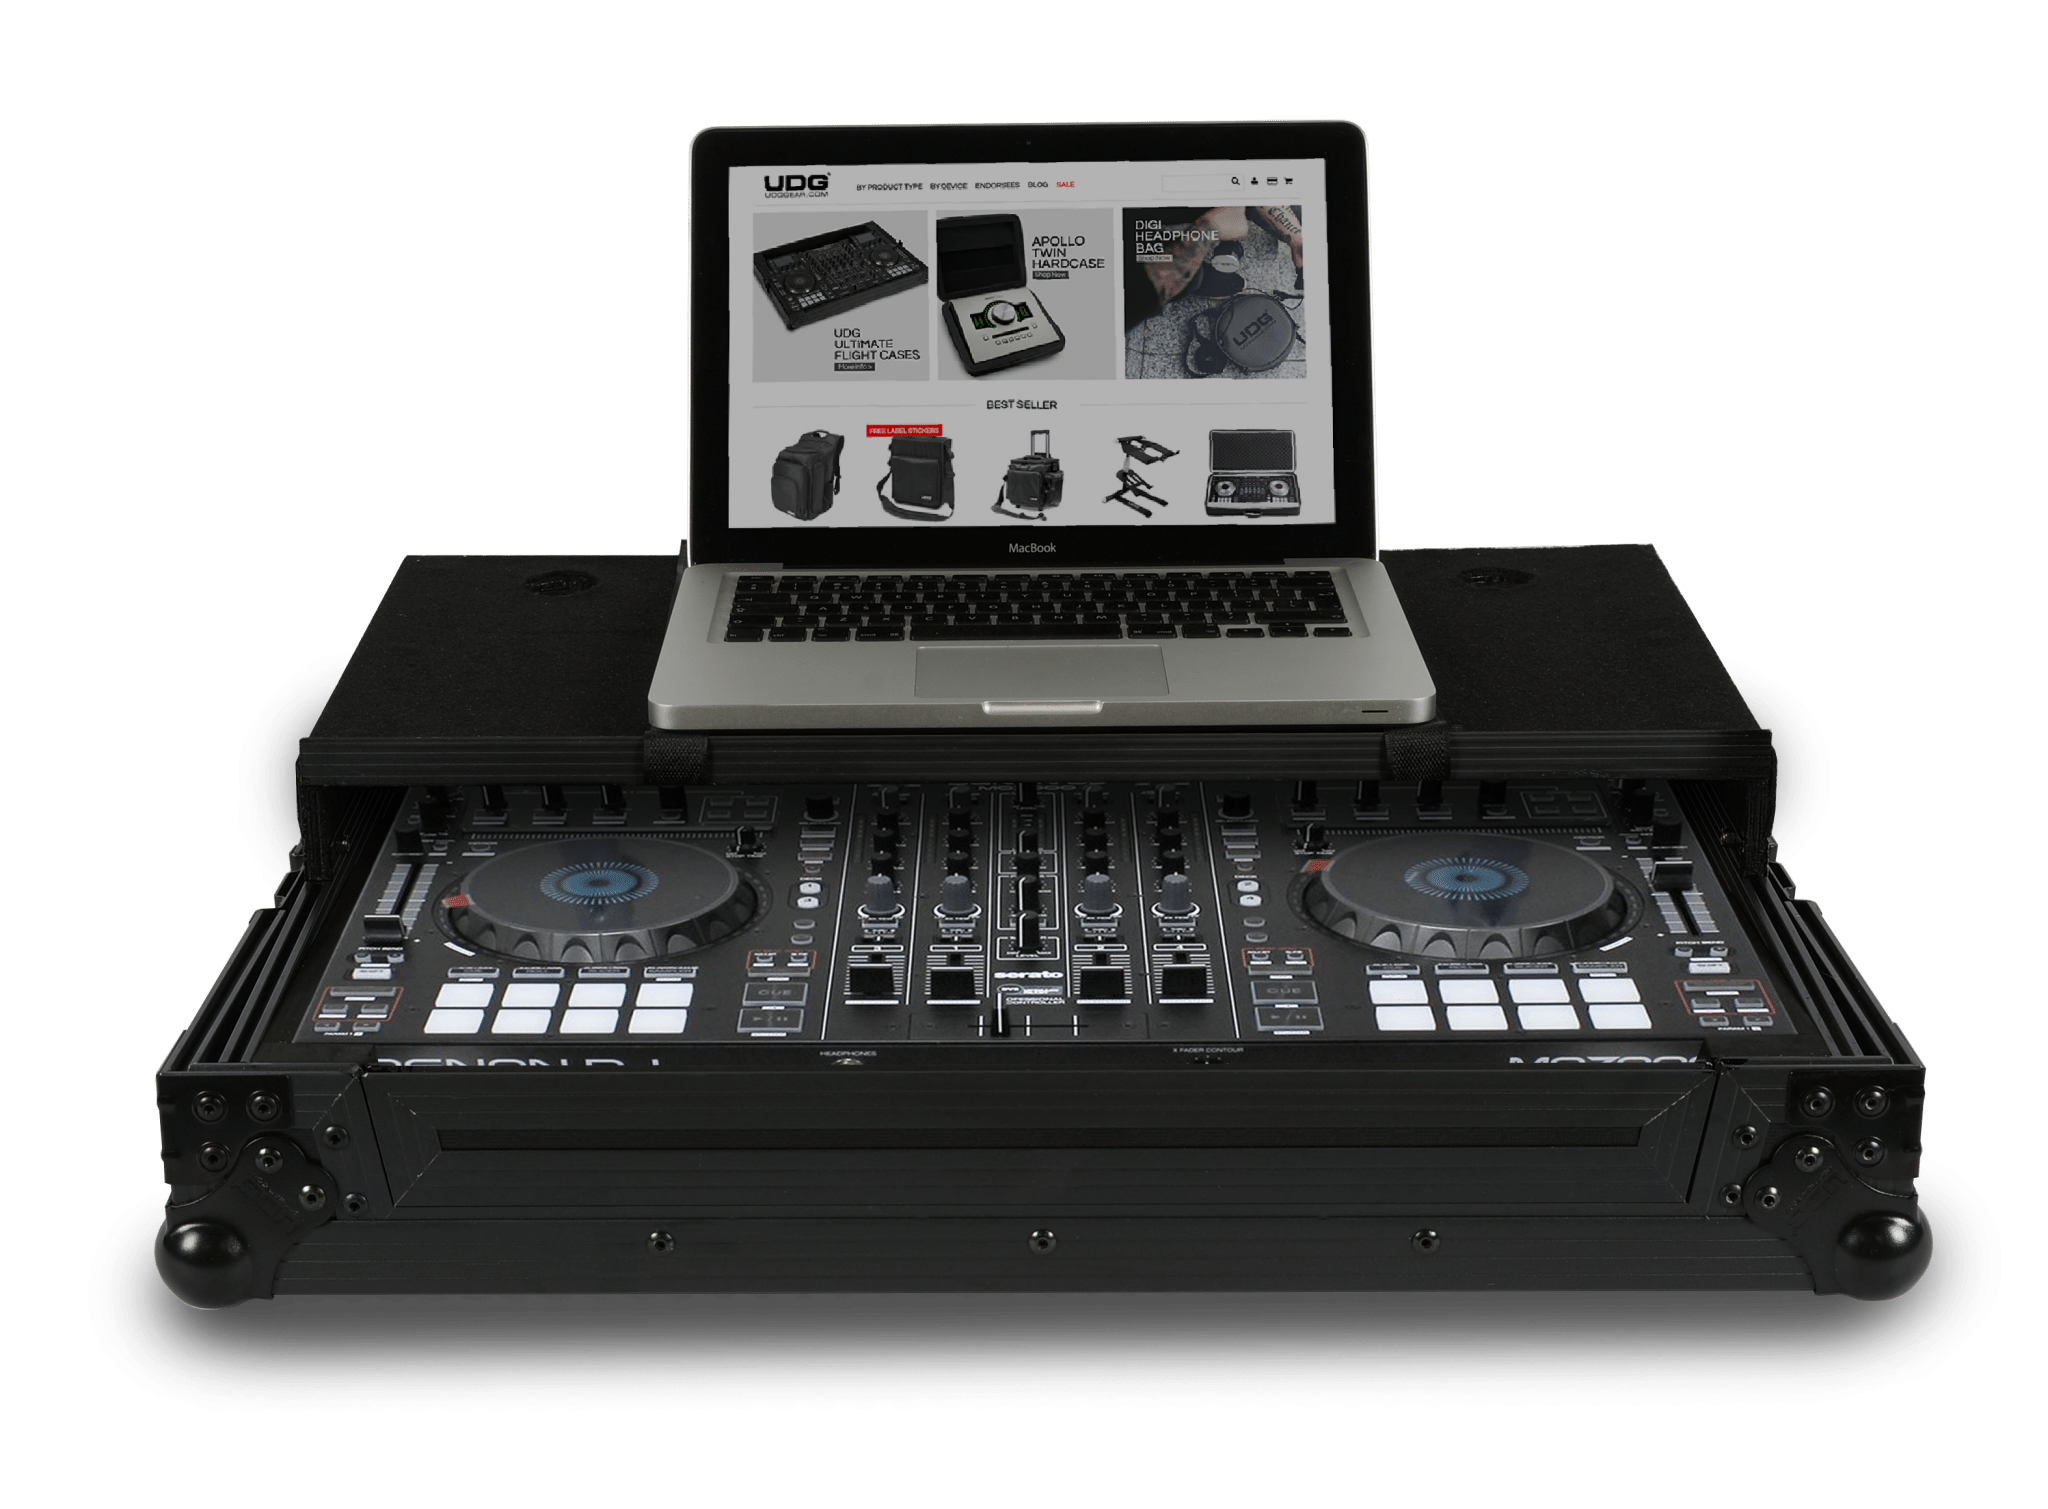 UDG Roland DJ808 Denon DJ mc7000 scratch flight cases (3)